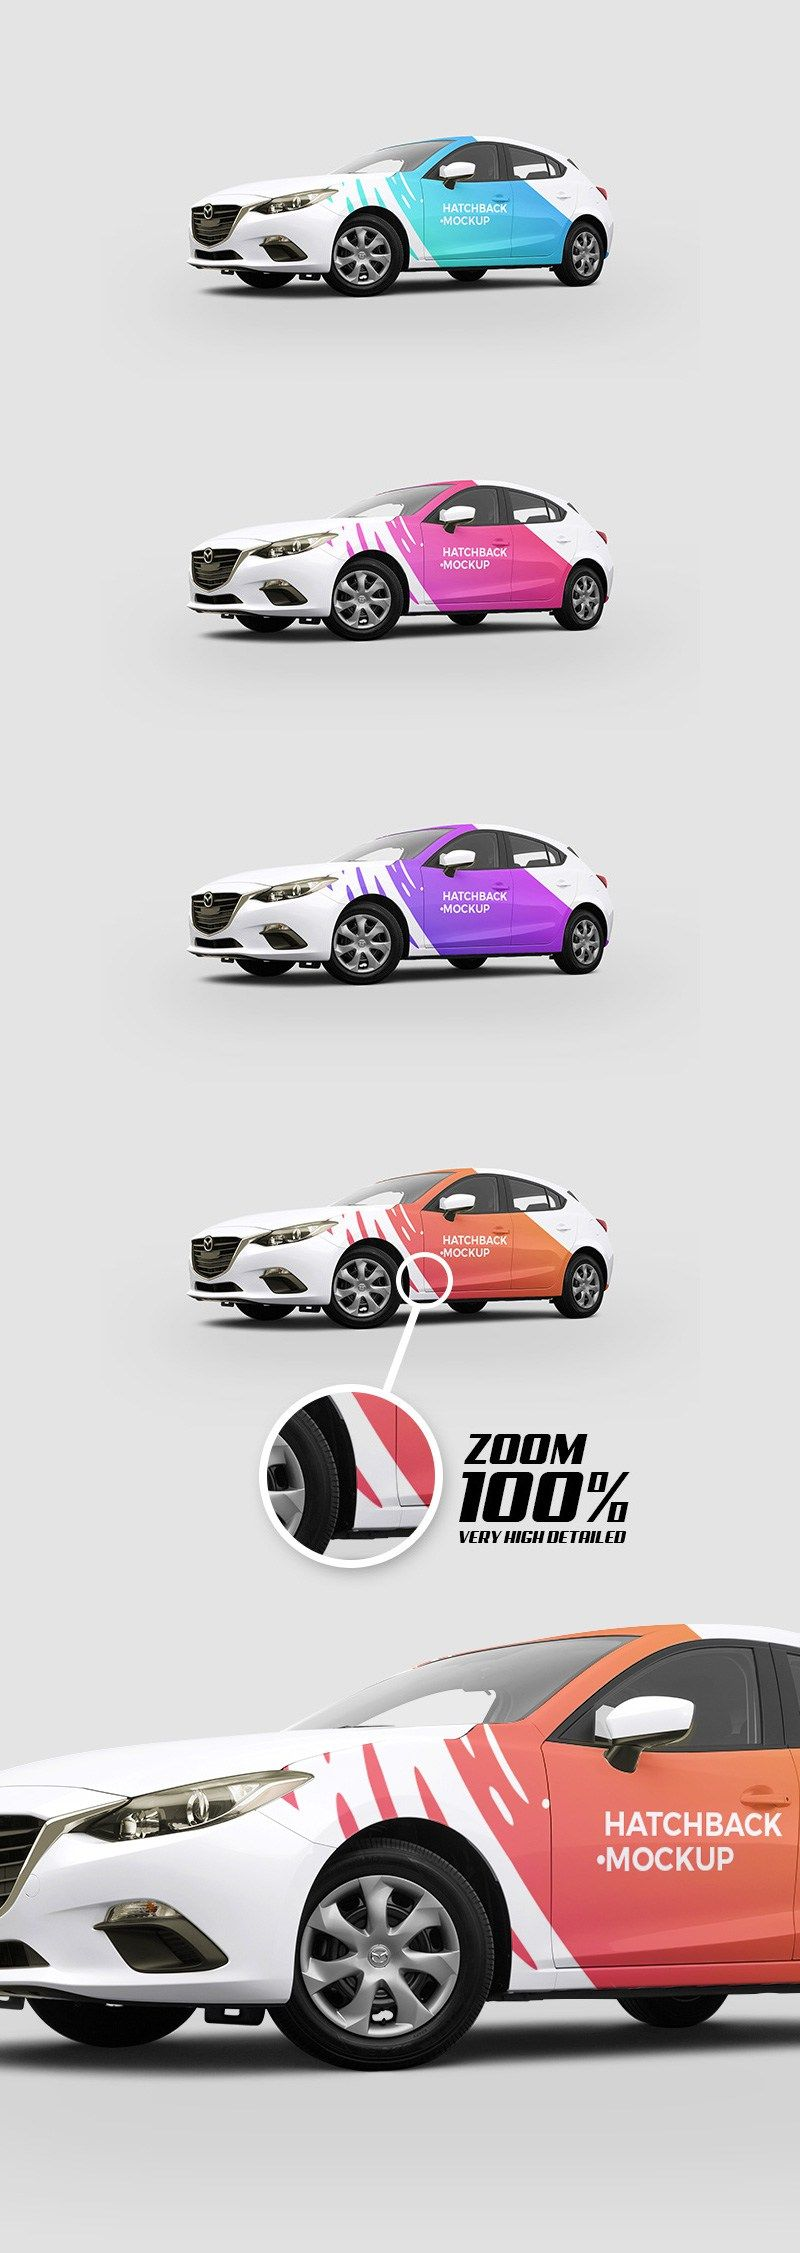 Todayu0027s Freebie Is Hatchback Car Mockup Free Psd. This Mock Up Allows You  To Make Awesome Presentations Of Your Works.